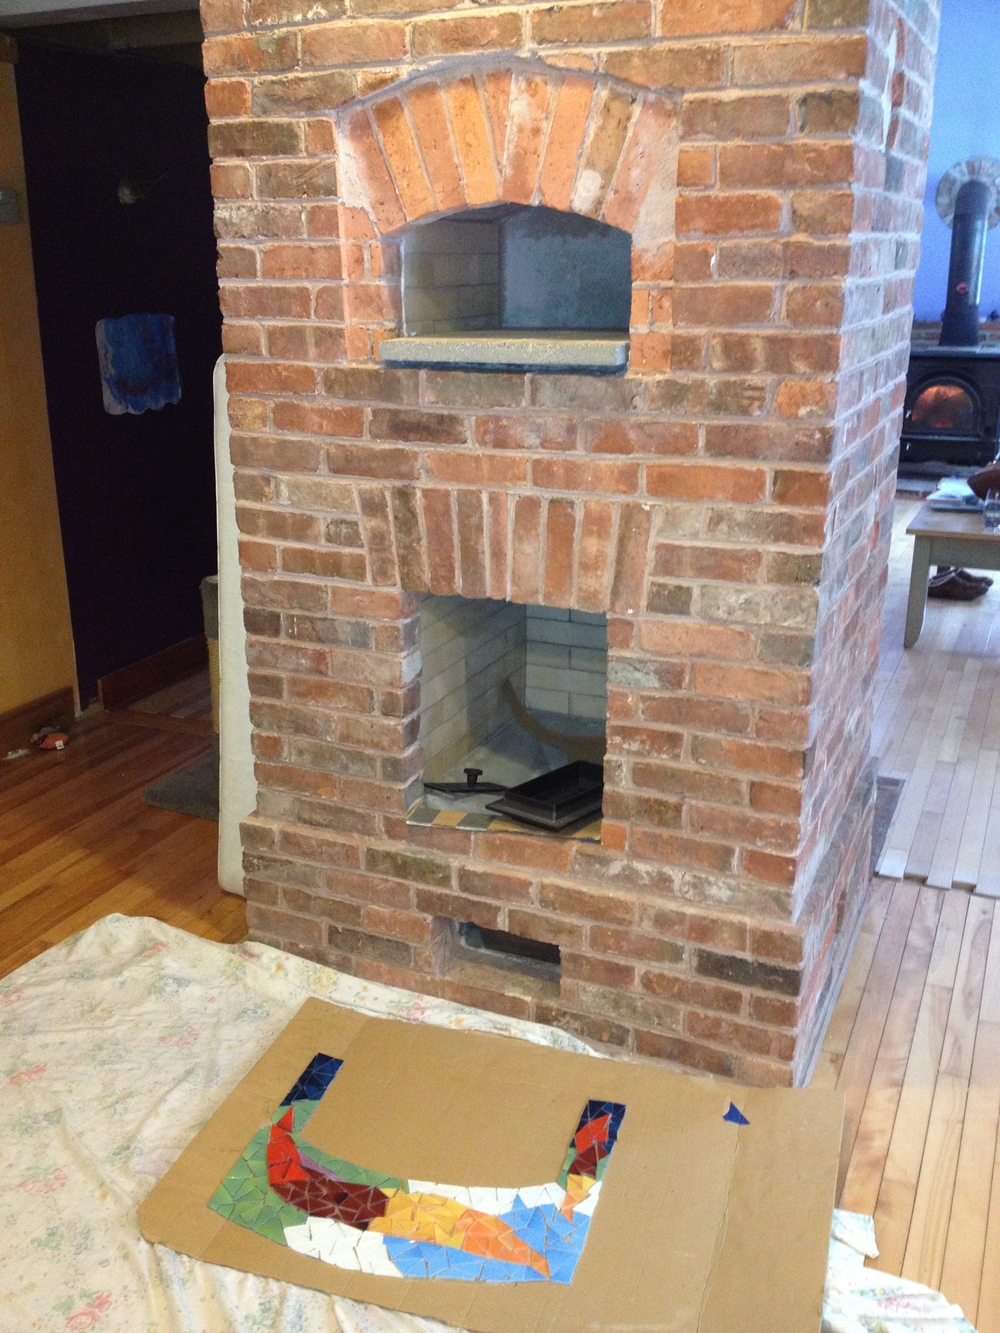 Here is an image of the heater, just before the mosaic was installed, the mosaic on the floor is face down, stuck together temporarily by contact paper.